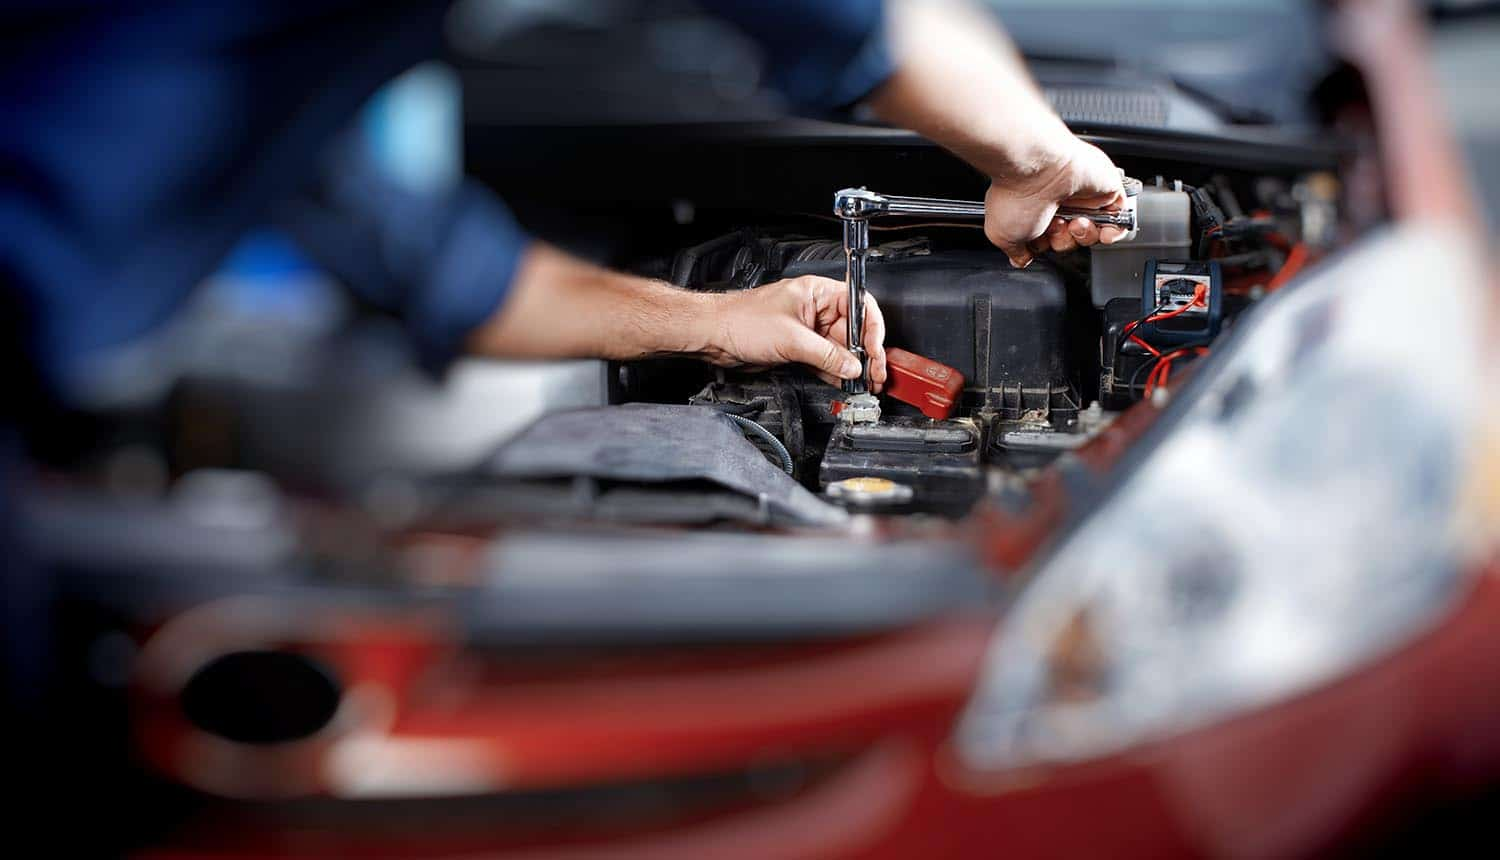 Mechanic working on car engine showing the warning from FBI that U.S. automotive industry is targeted by hackers